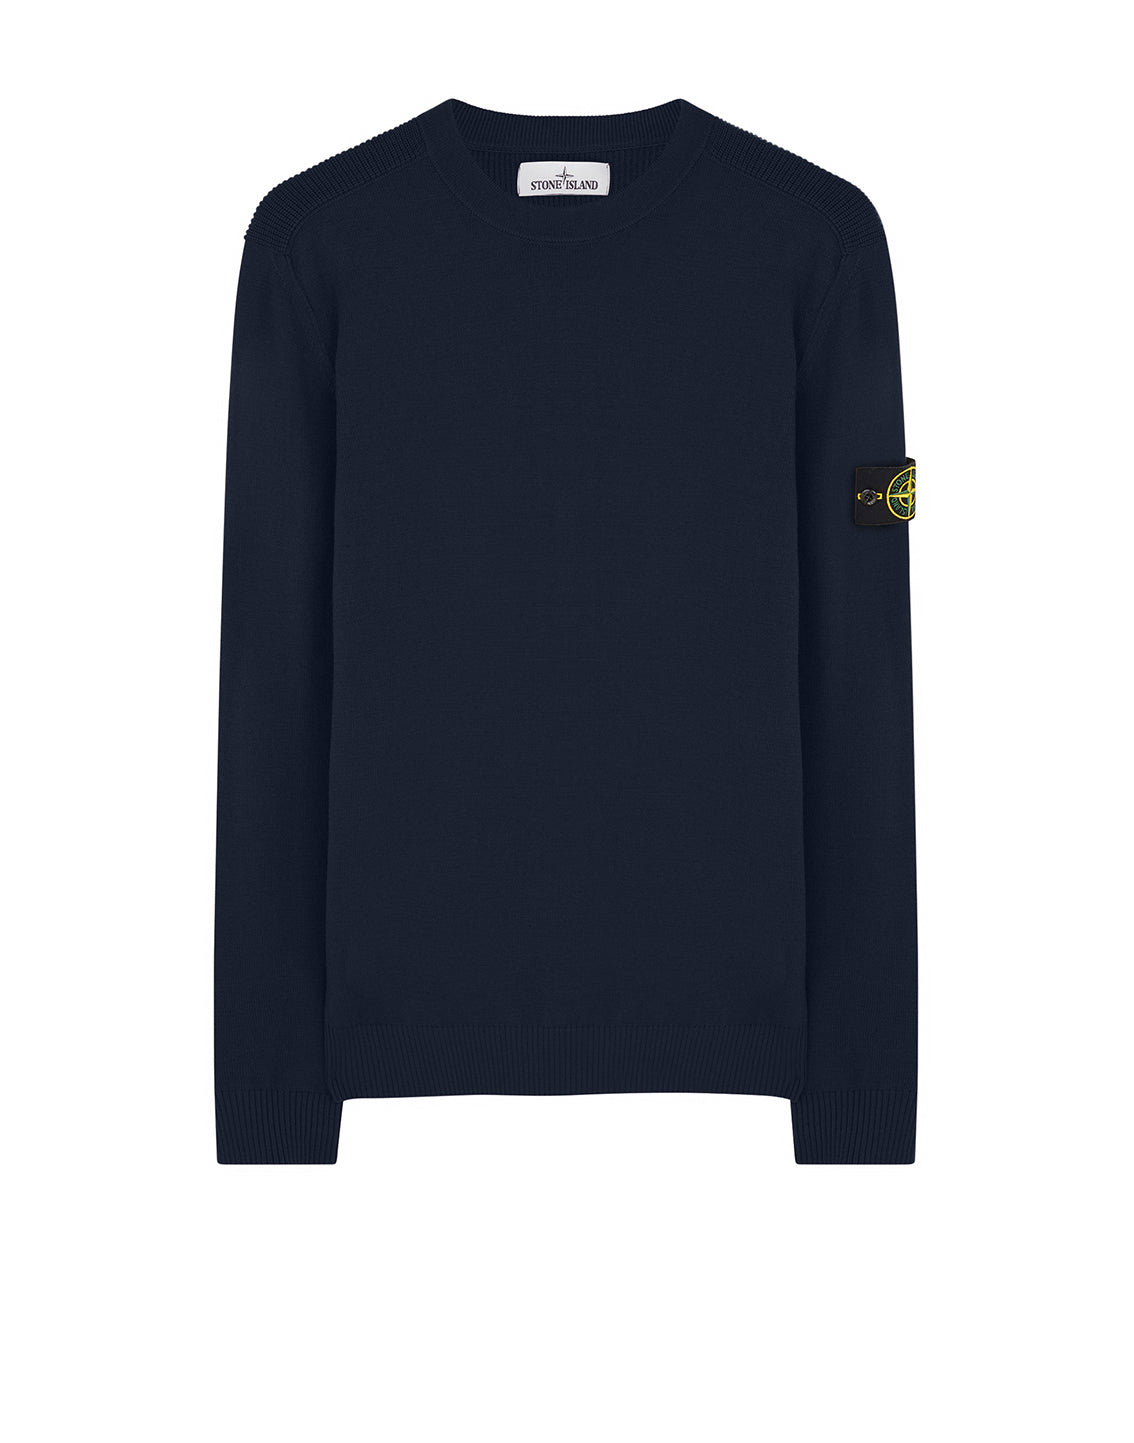 591A1 Crewneck Knit in Navy